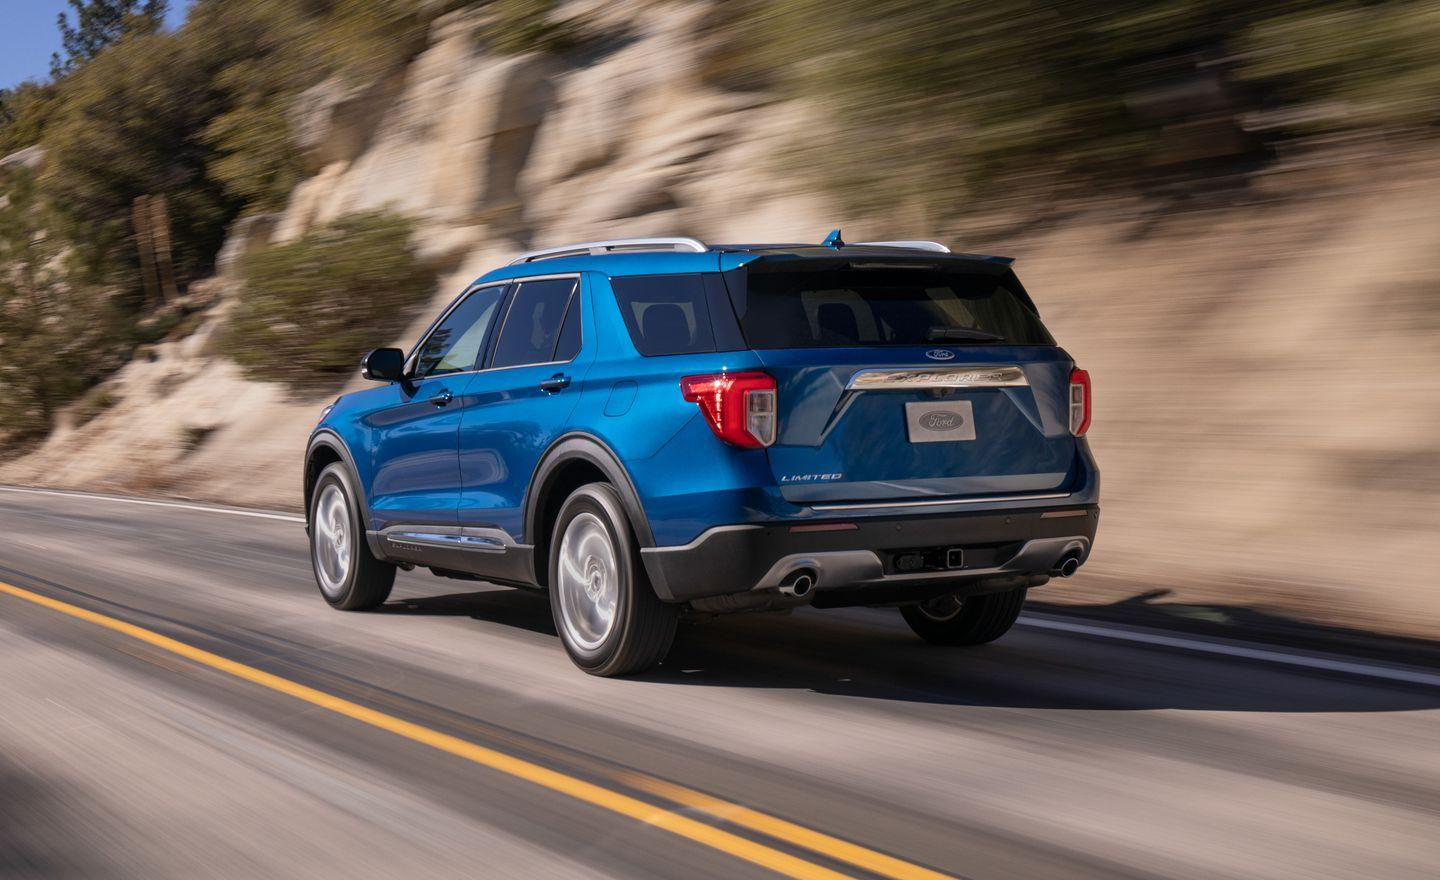 2020 Ford Explorer: Redesign, Engines, Arrival >> Detailed Photos Of The Redesigned 2020 Ford Explorer